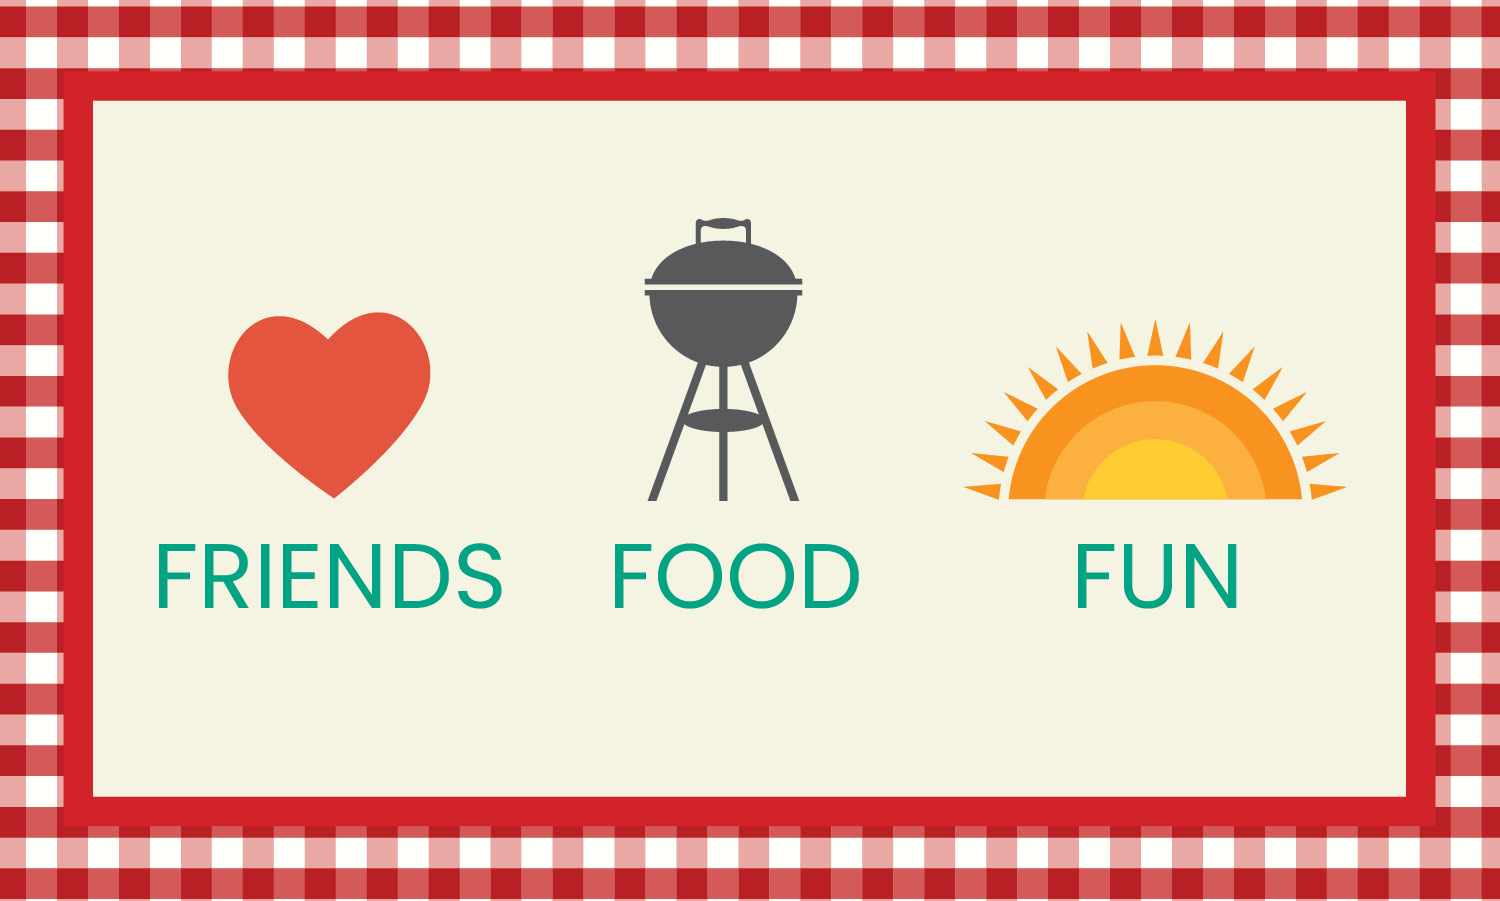 Illustration of a heart, BBQ grill, and sun. Words under the illustration read friends, food, and fun. Picnic table cloth border around illustration.